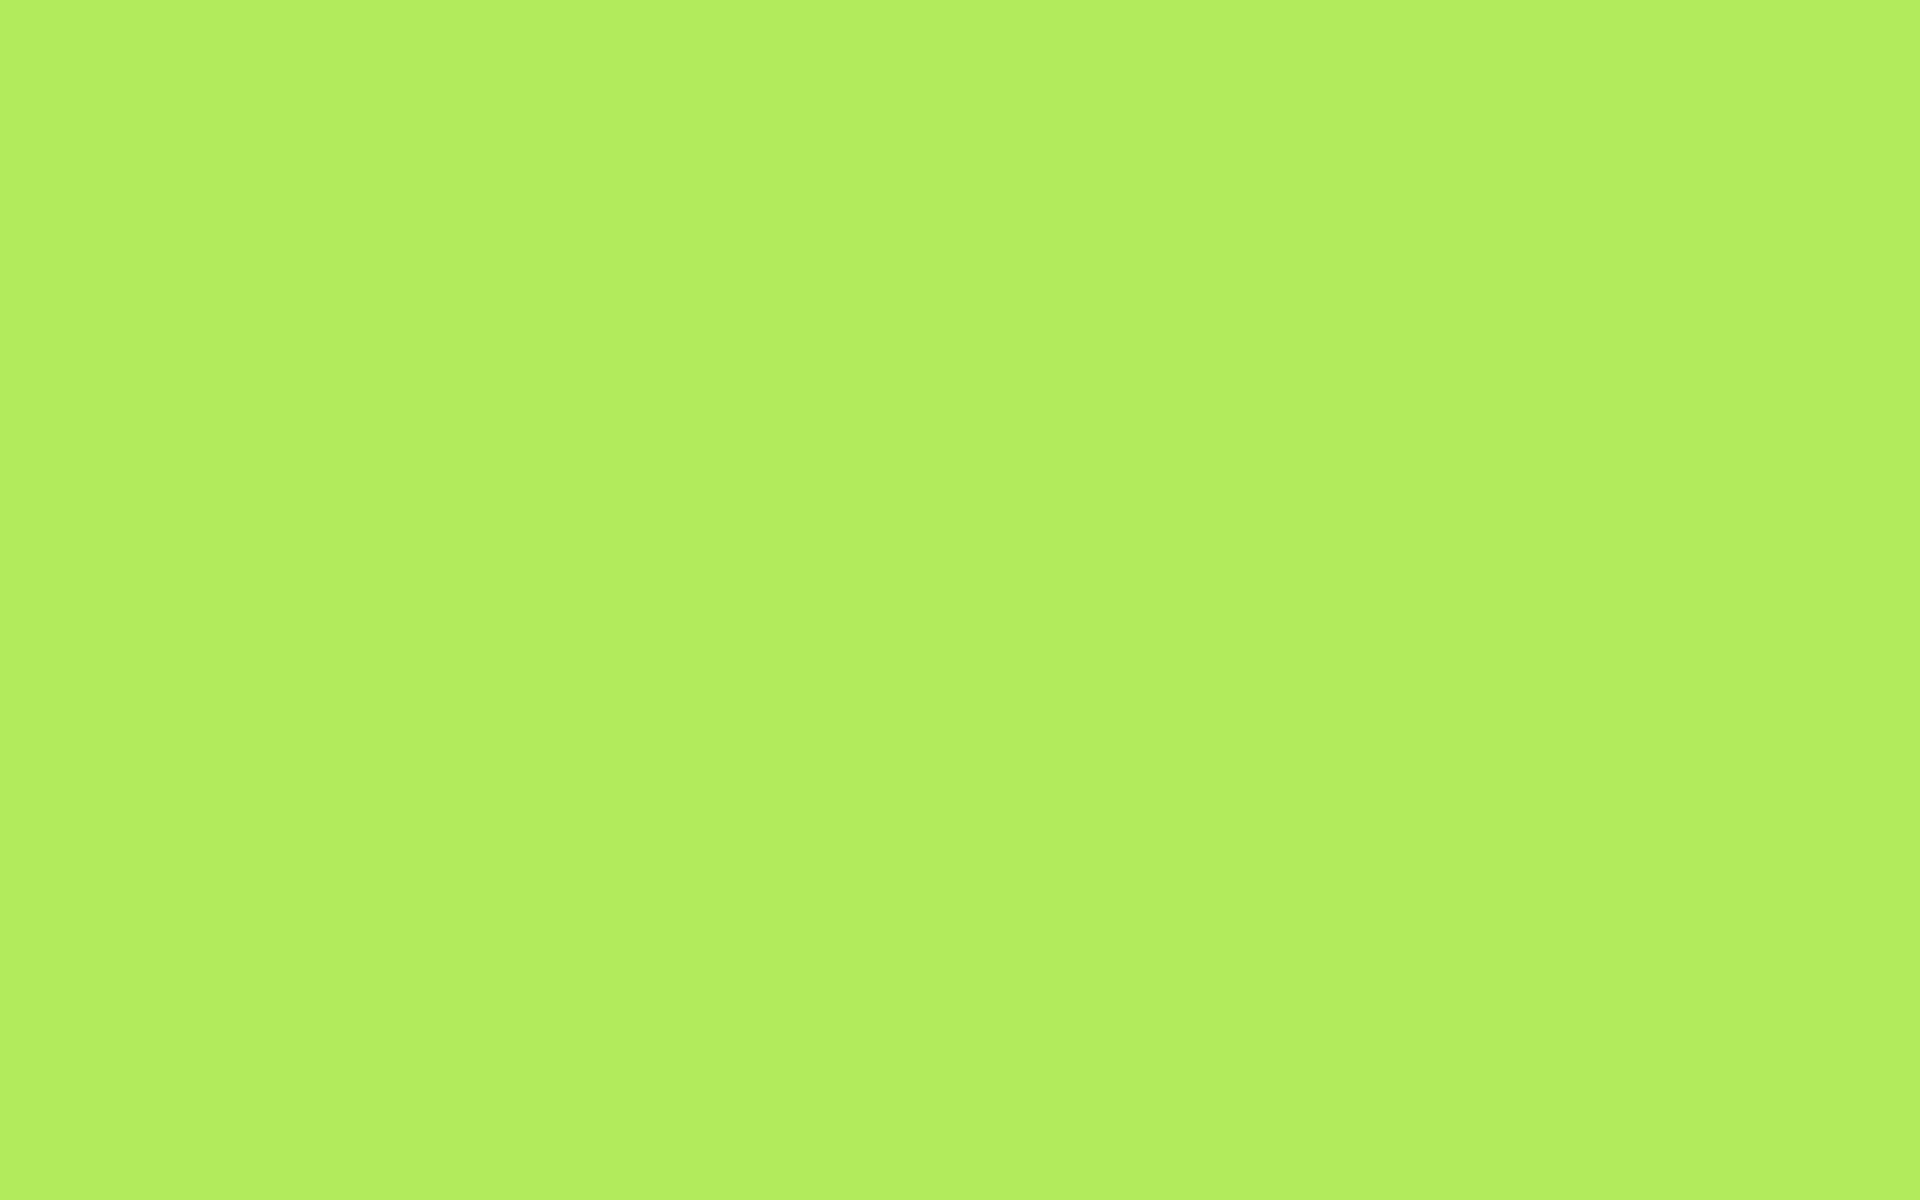 1920x1200 Inchworm Solid Color Background